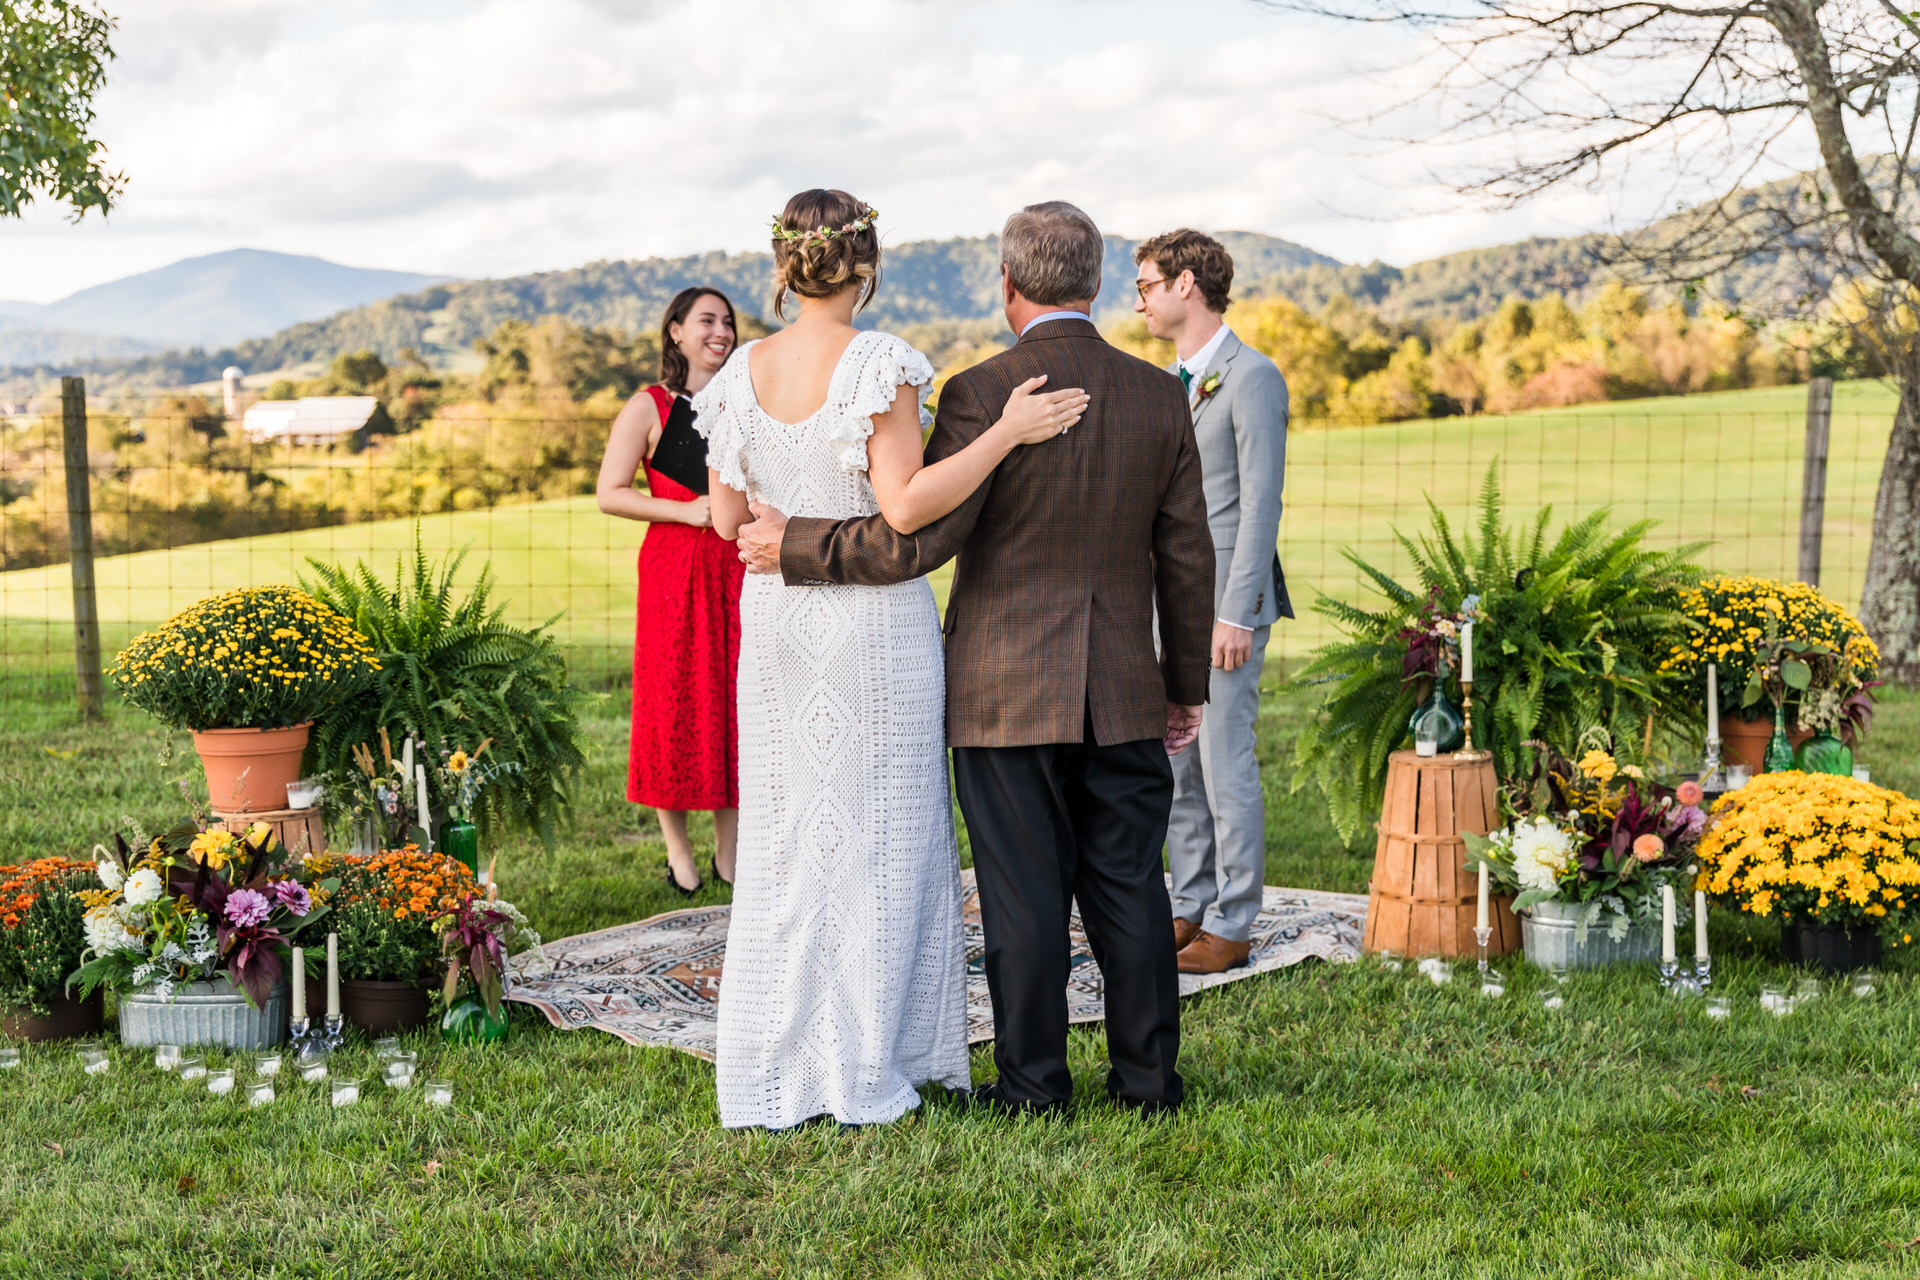 Backyard Vows - Charlottesville VA Wedding Photographer | Bride and Dad walking up the aisle